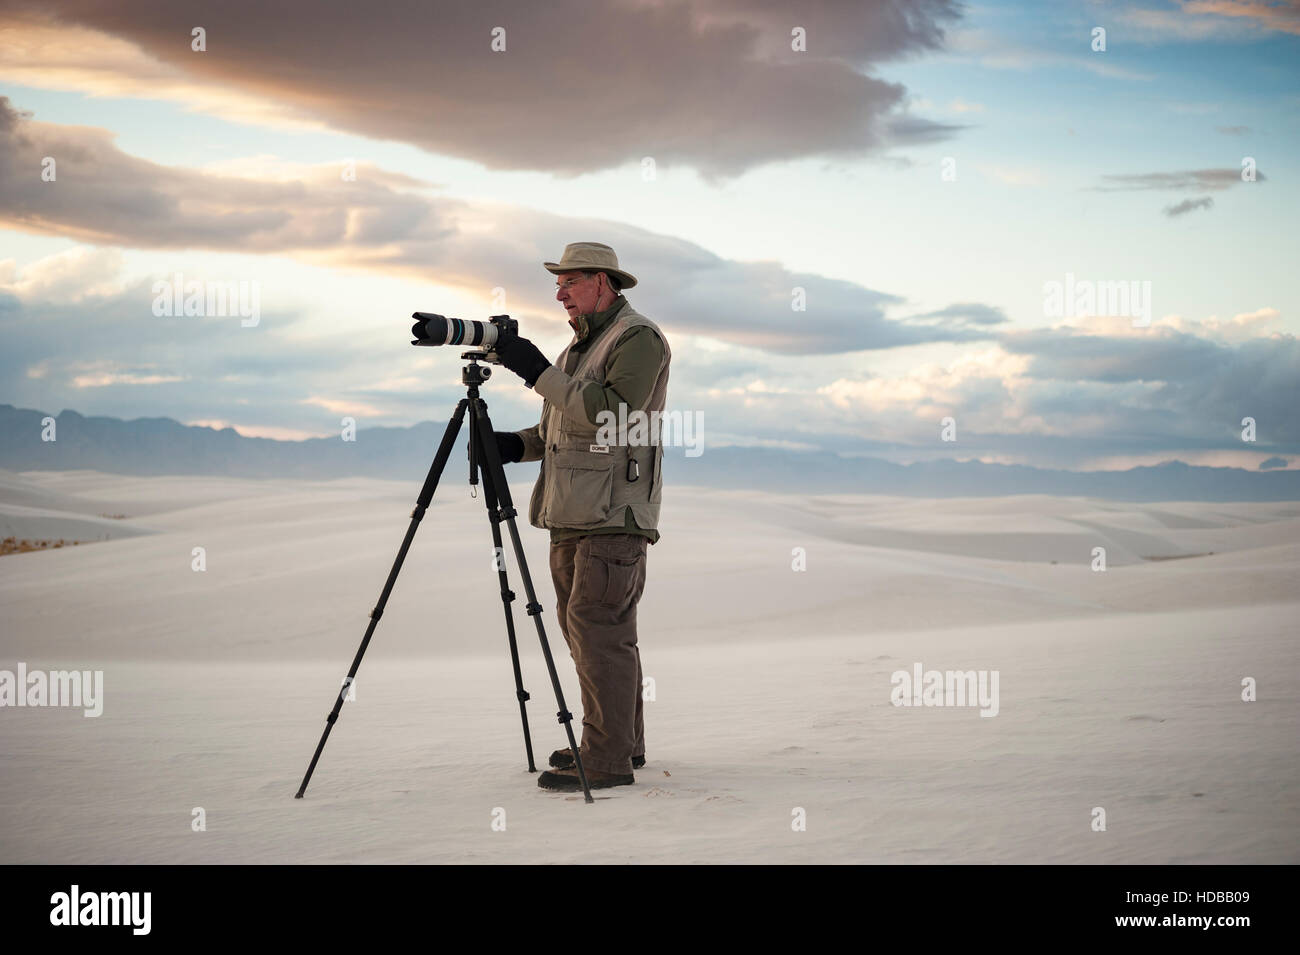 An amateur photographer taking photos / chimping at the back screen of his camera at White Sands National Monument, - Stock Image